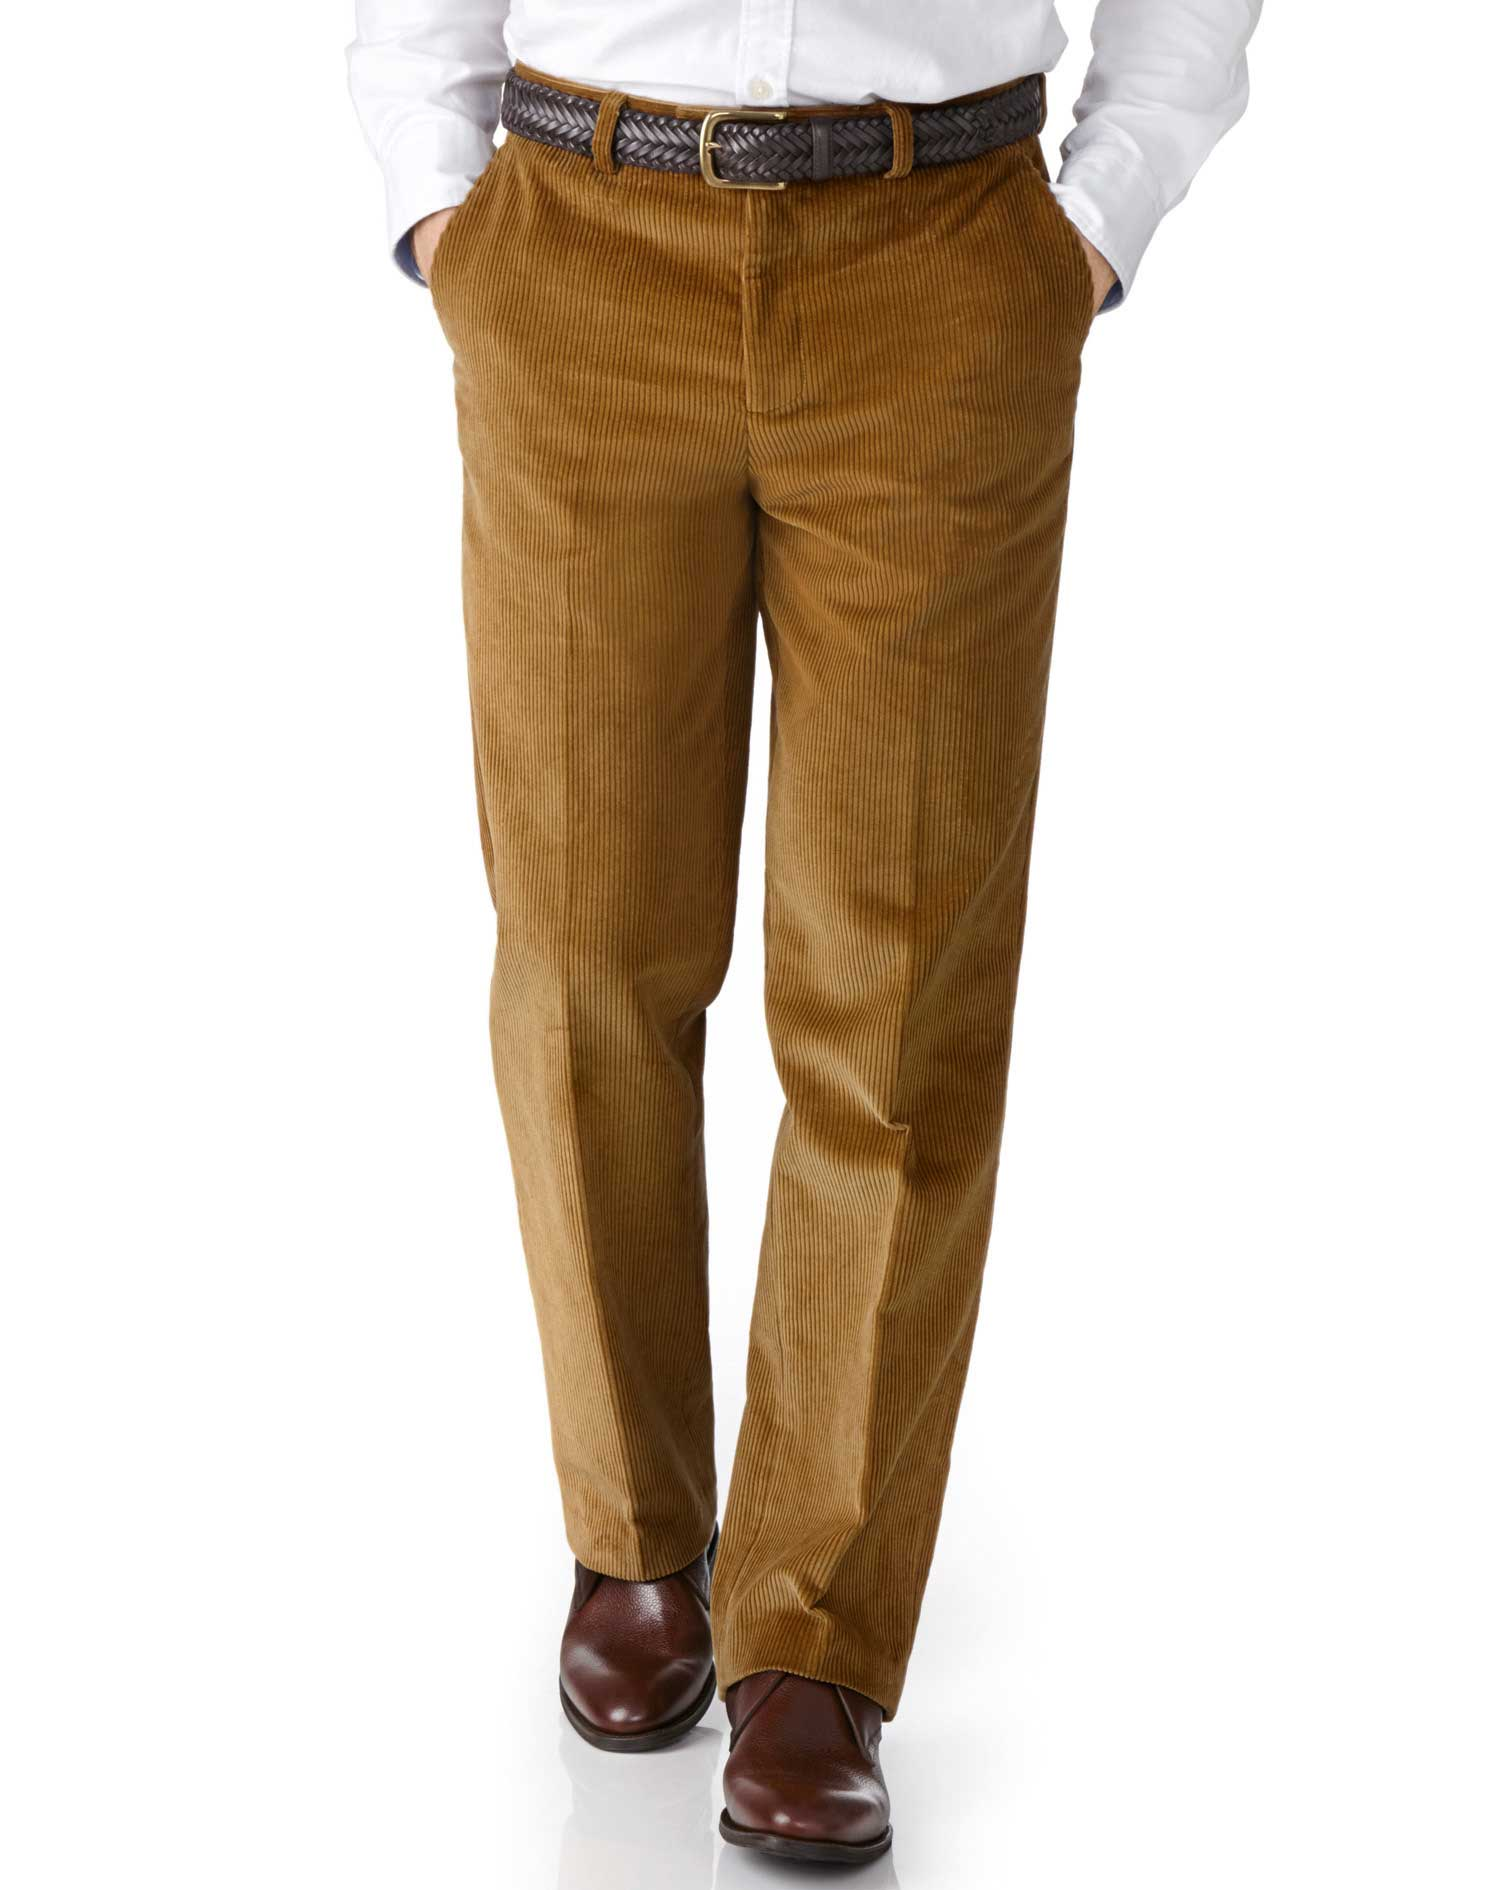 Yellow Classic Fit Jumbo Cord Trousers Size W38 L32 by Charles Tyrwhitt